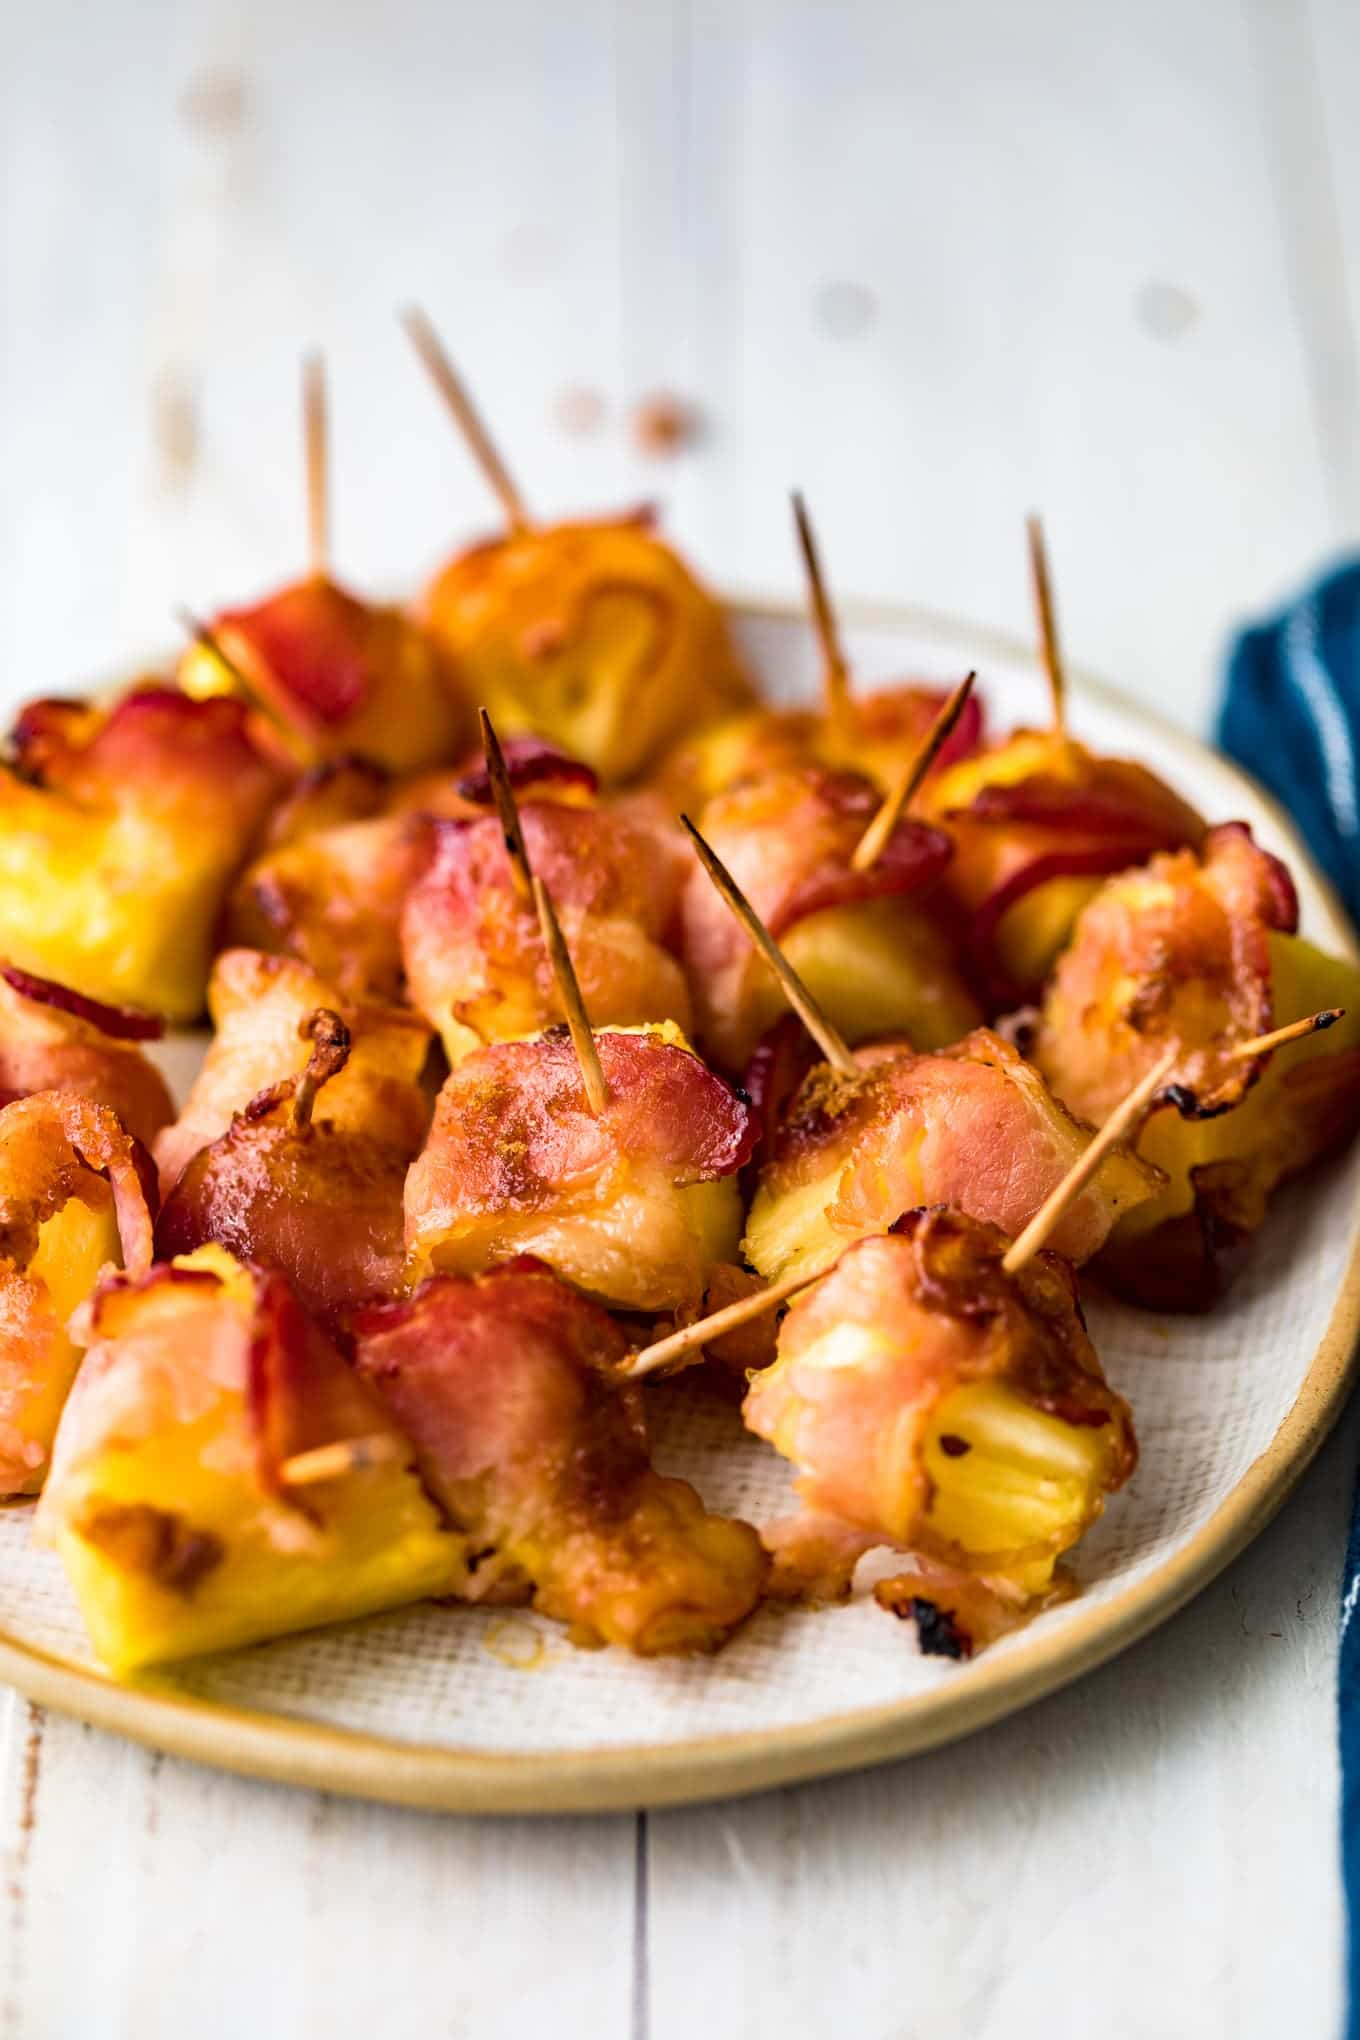 Pineapple chunks wrapped in bacon with toothpicks